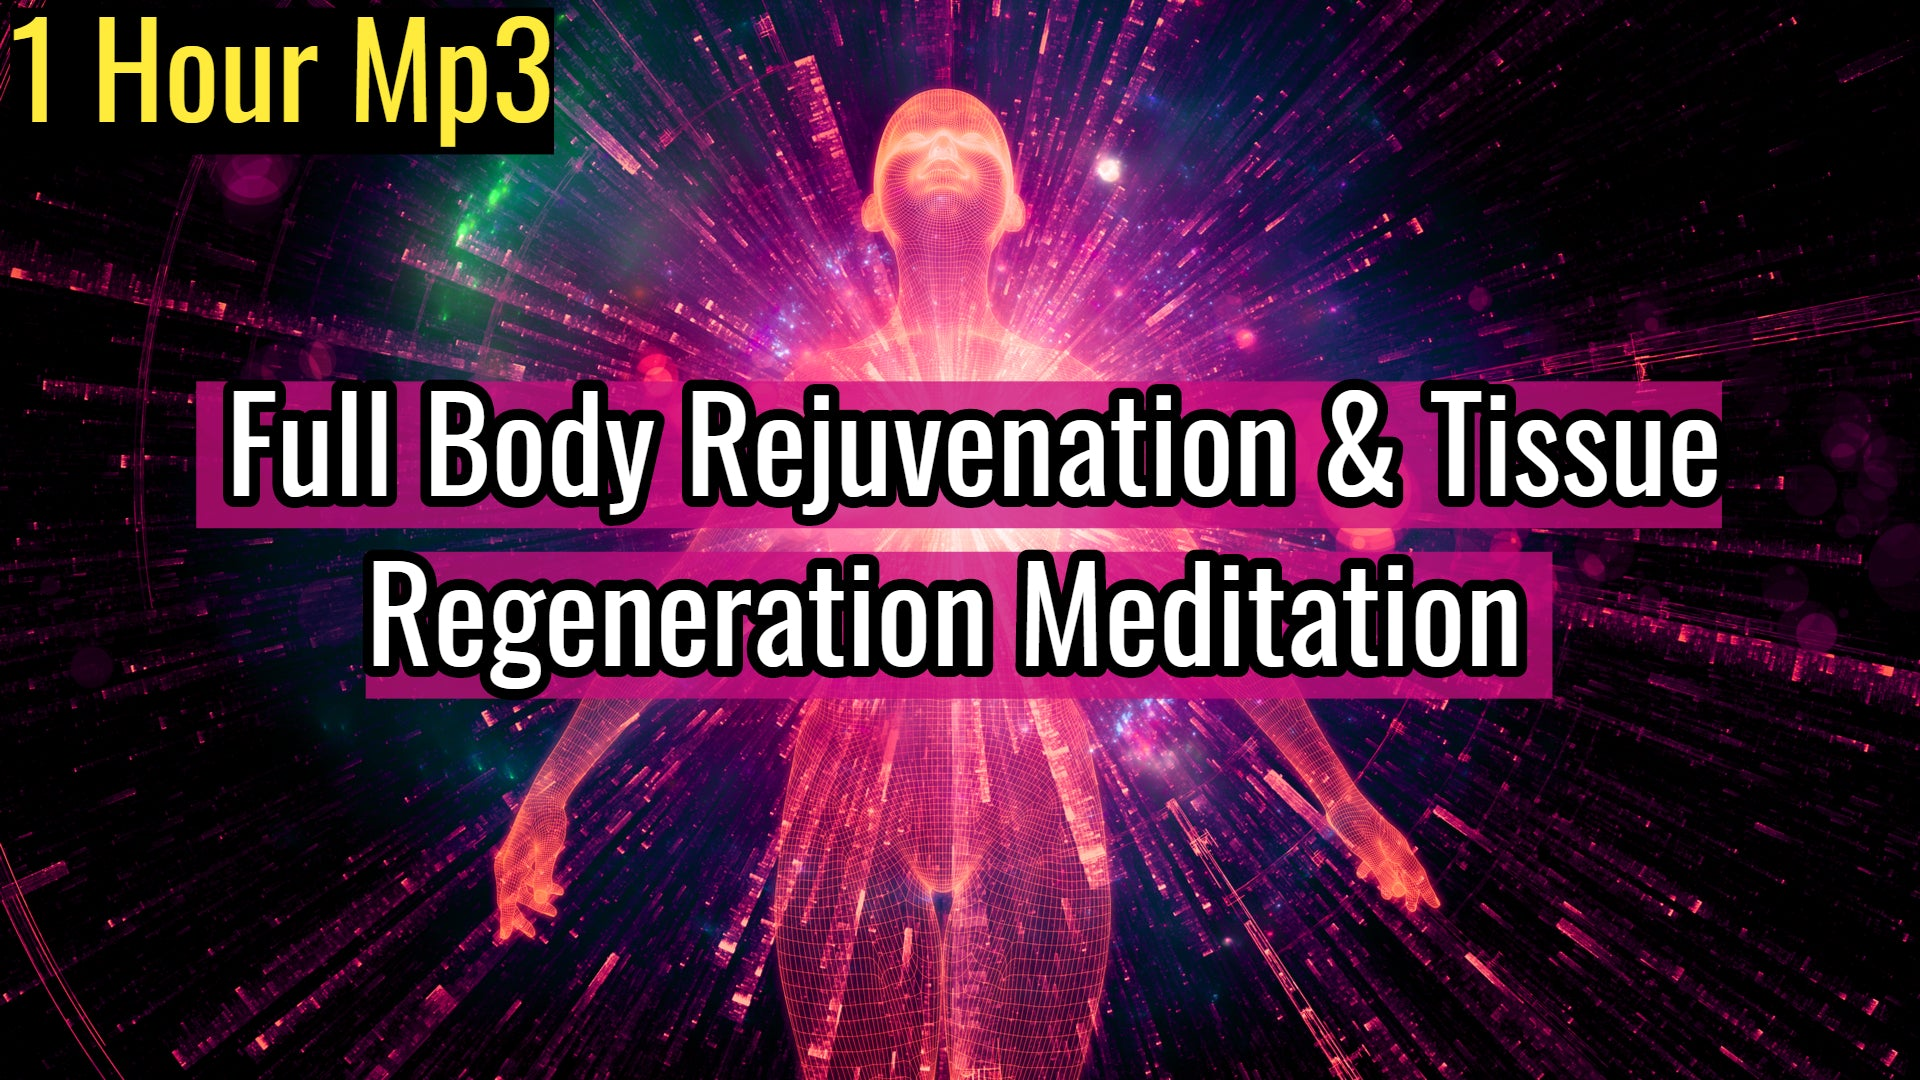 Full Body Rejuvenation & Tissue Regeneration Meditation | 528Hz Emotional & Physical Healing Music (1 Hour Track)